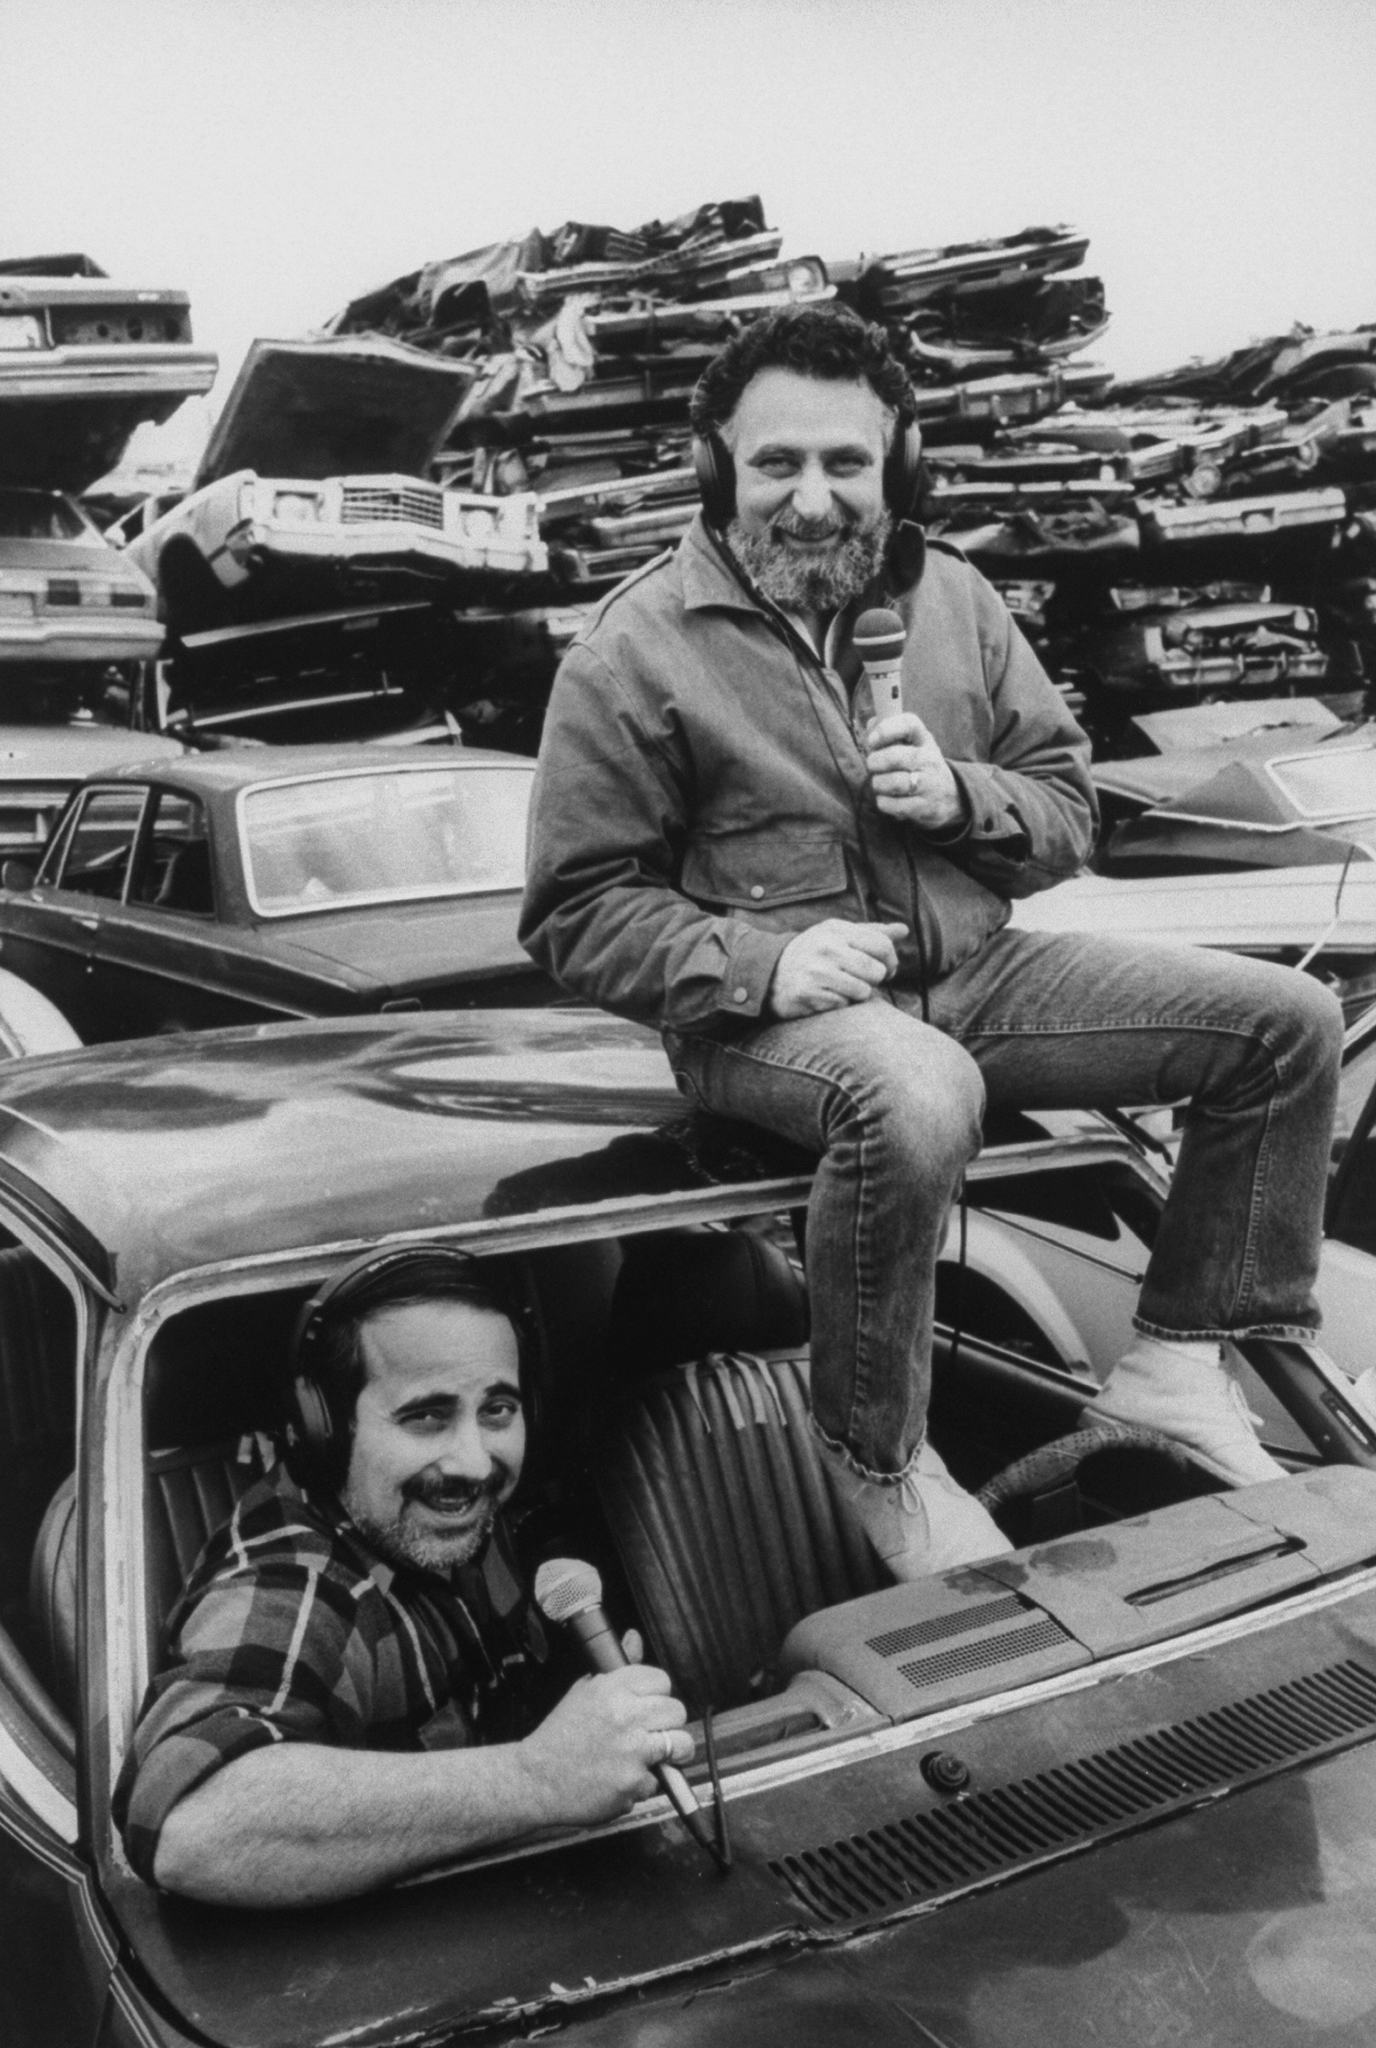 From Left: Ray Magliozzi and Tom Magliozzi car mechanics and radio talk show hosts for the show, Car Talk on WBUR-FM National Public Radio.